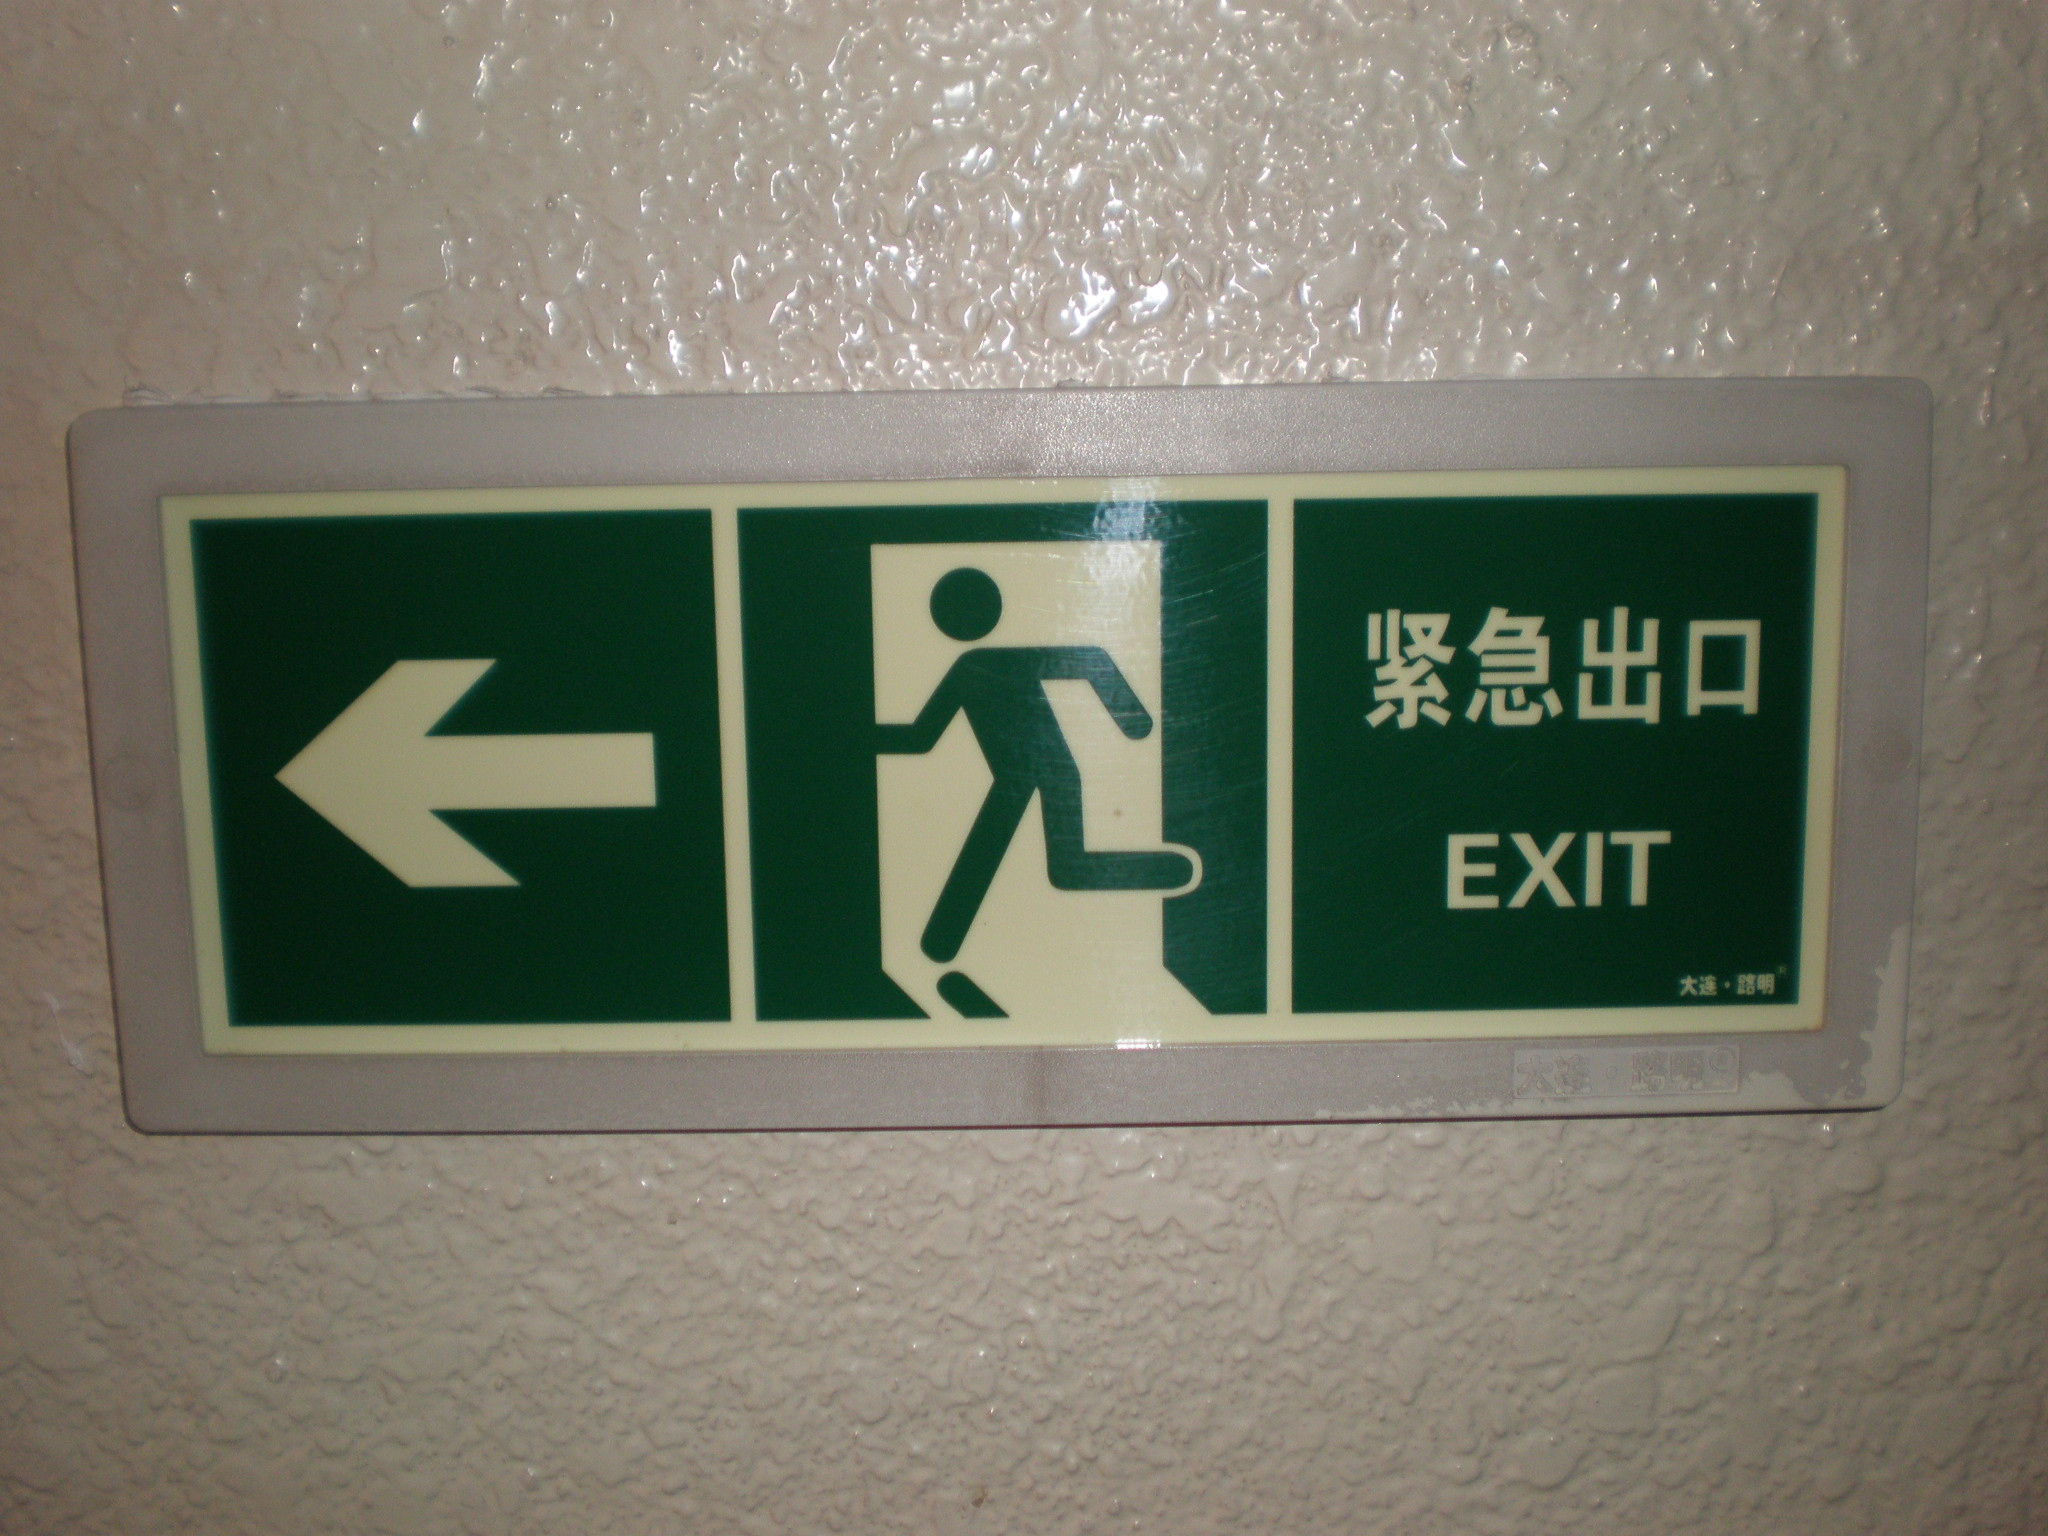 Green_English-Chinese_icon_exit_sign.JPG